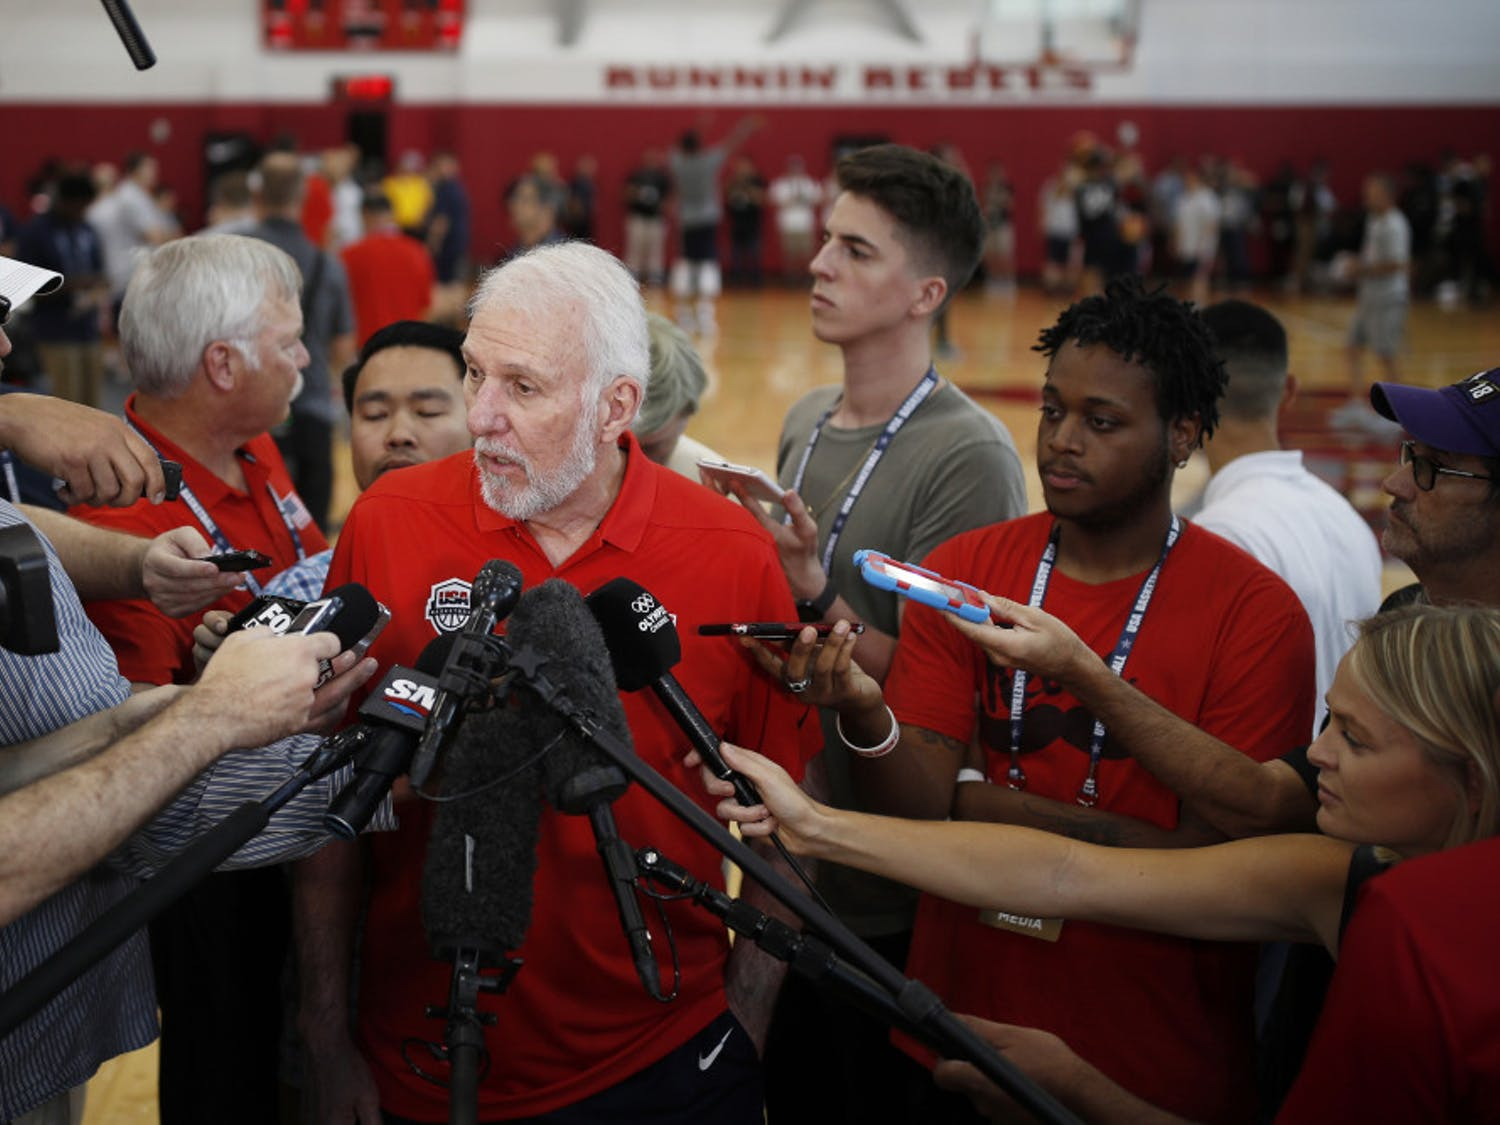 Team USA coach Gregg Popovich faces a tough challenge at the 2019 FIBA World Cup with so many star players set to miss the tournament.